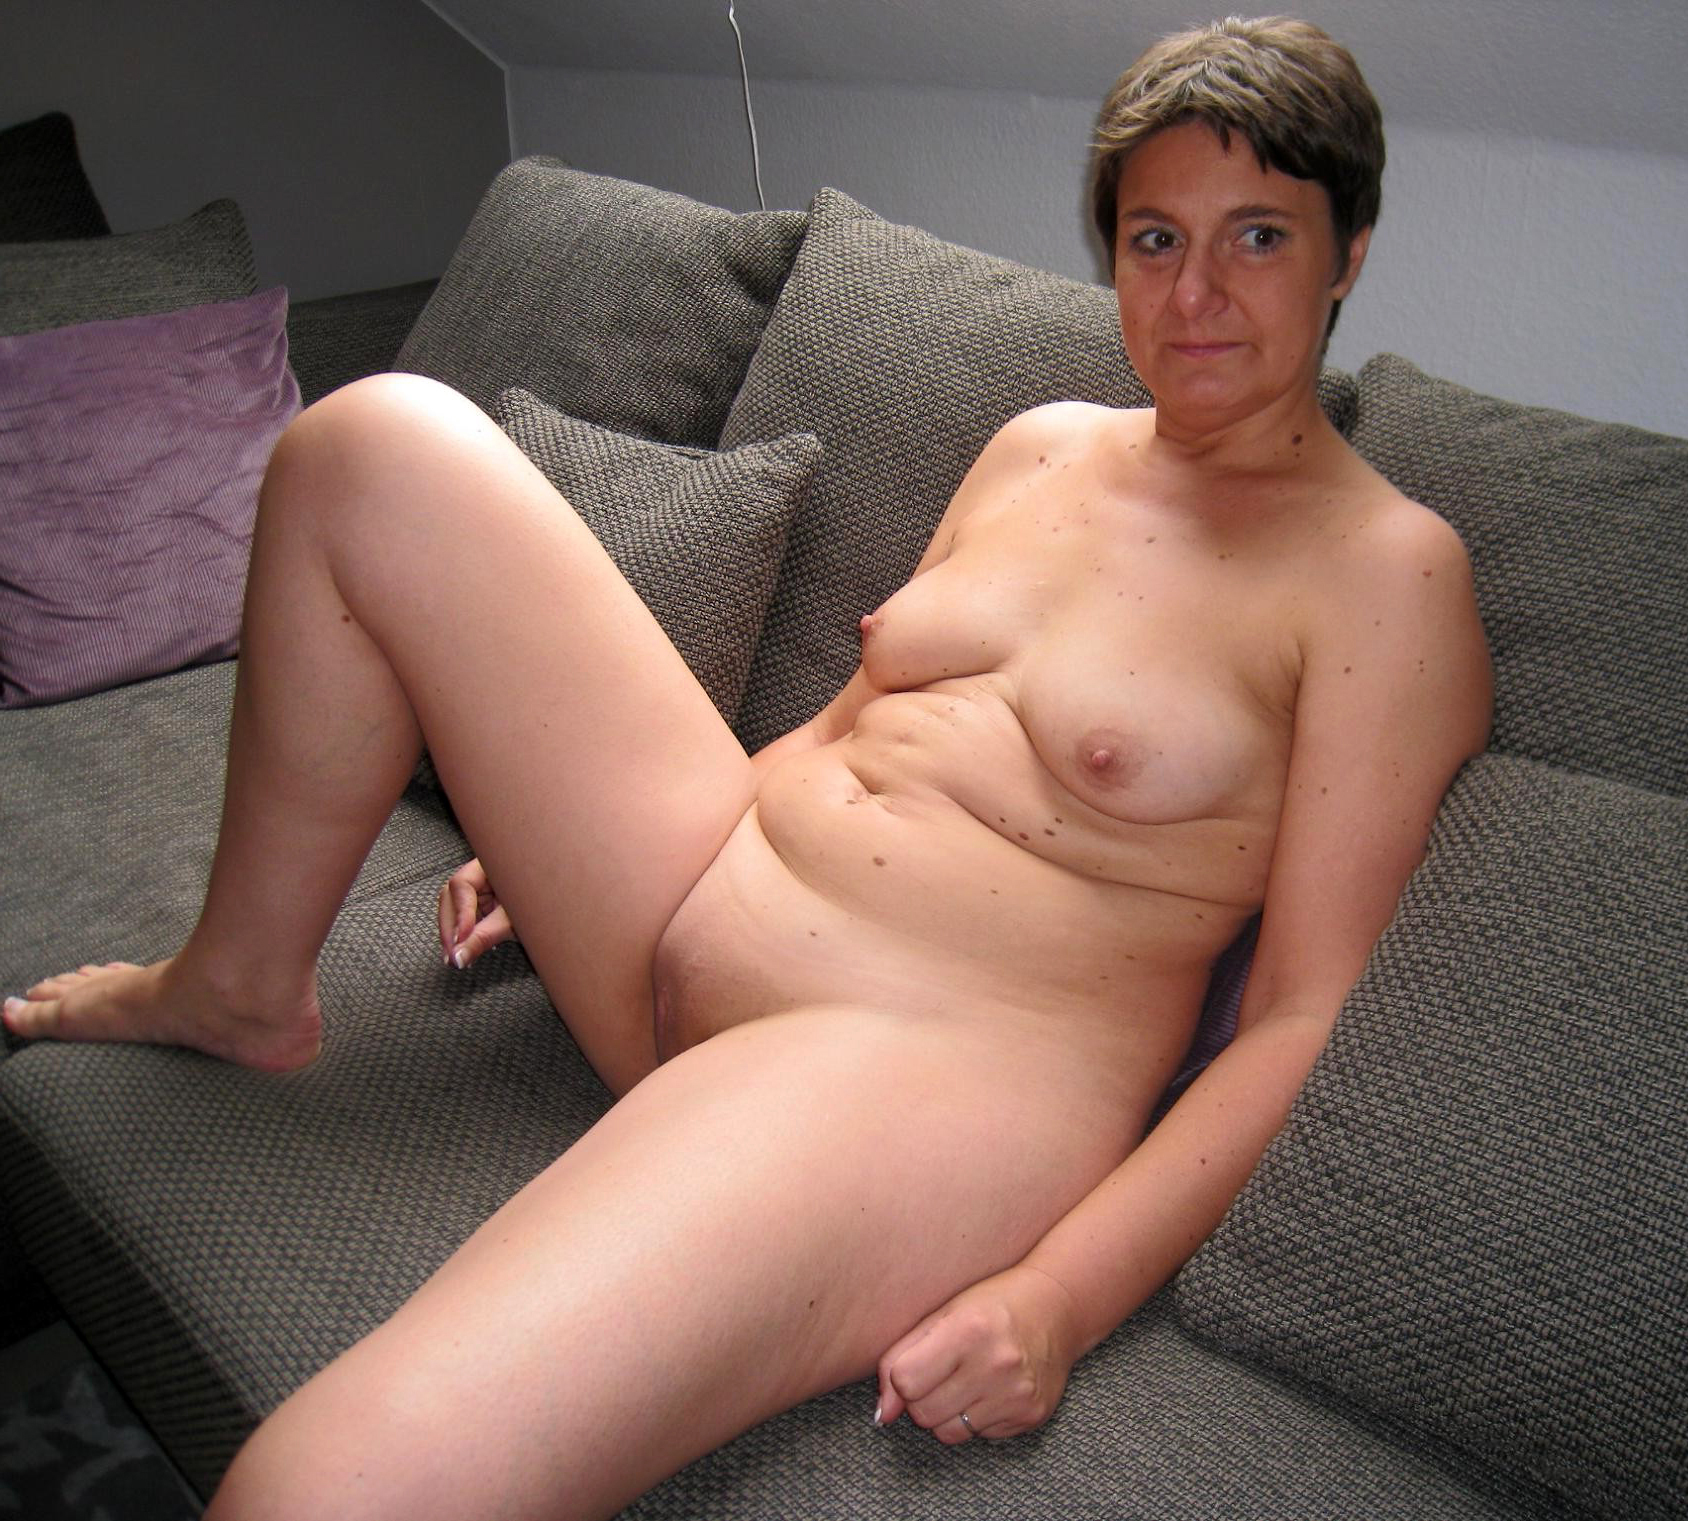 Mature wifr amature naked pictures